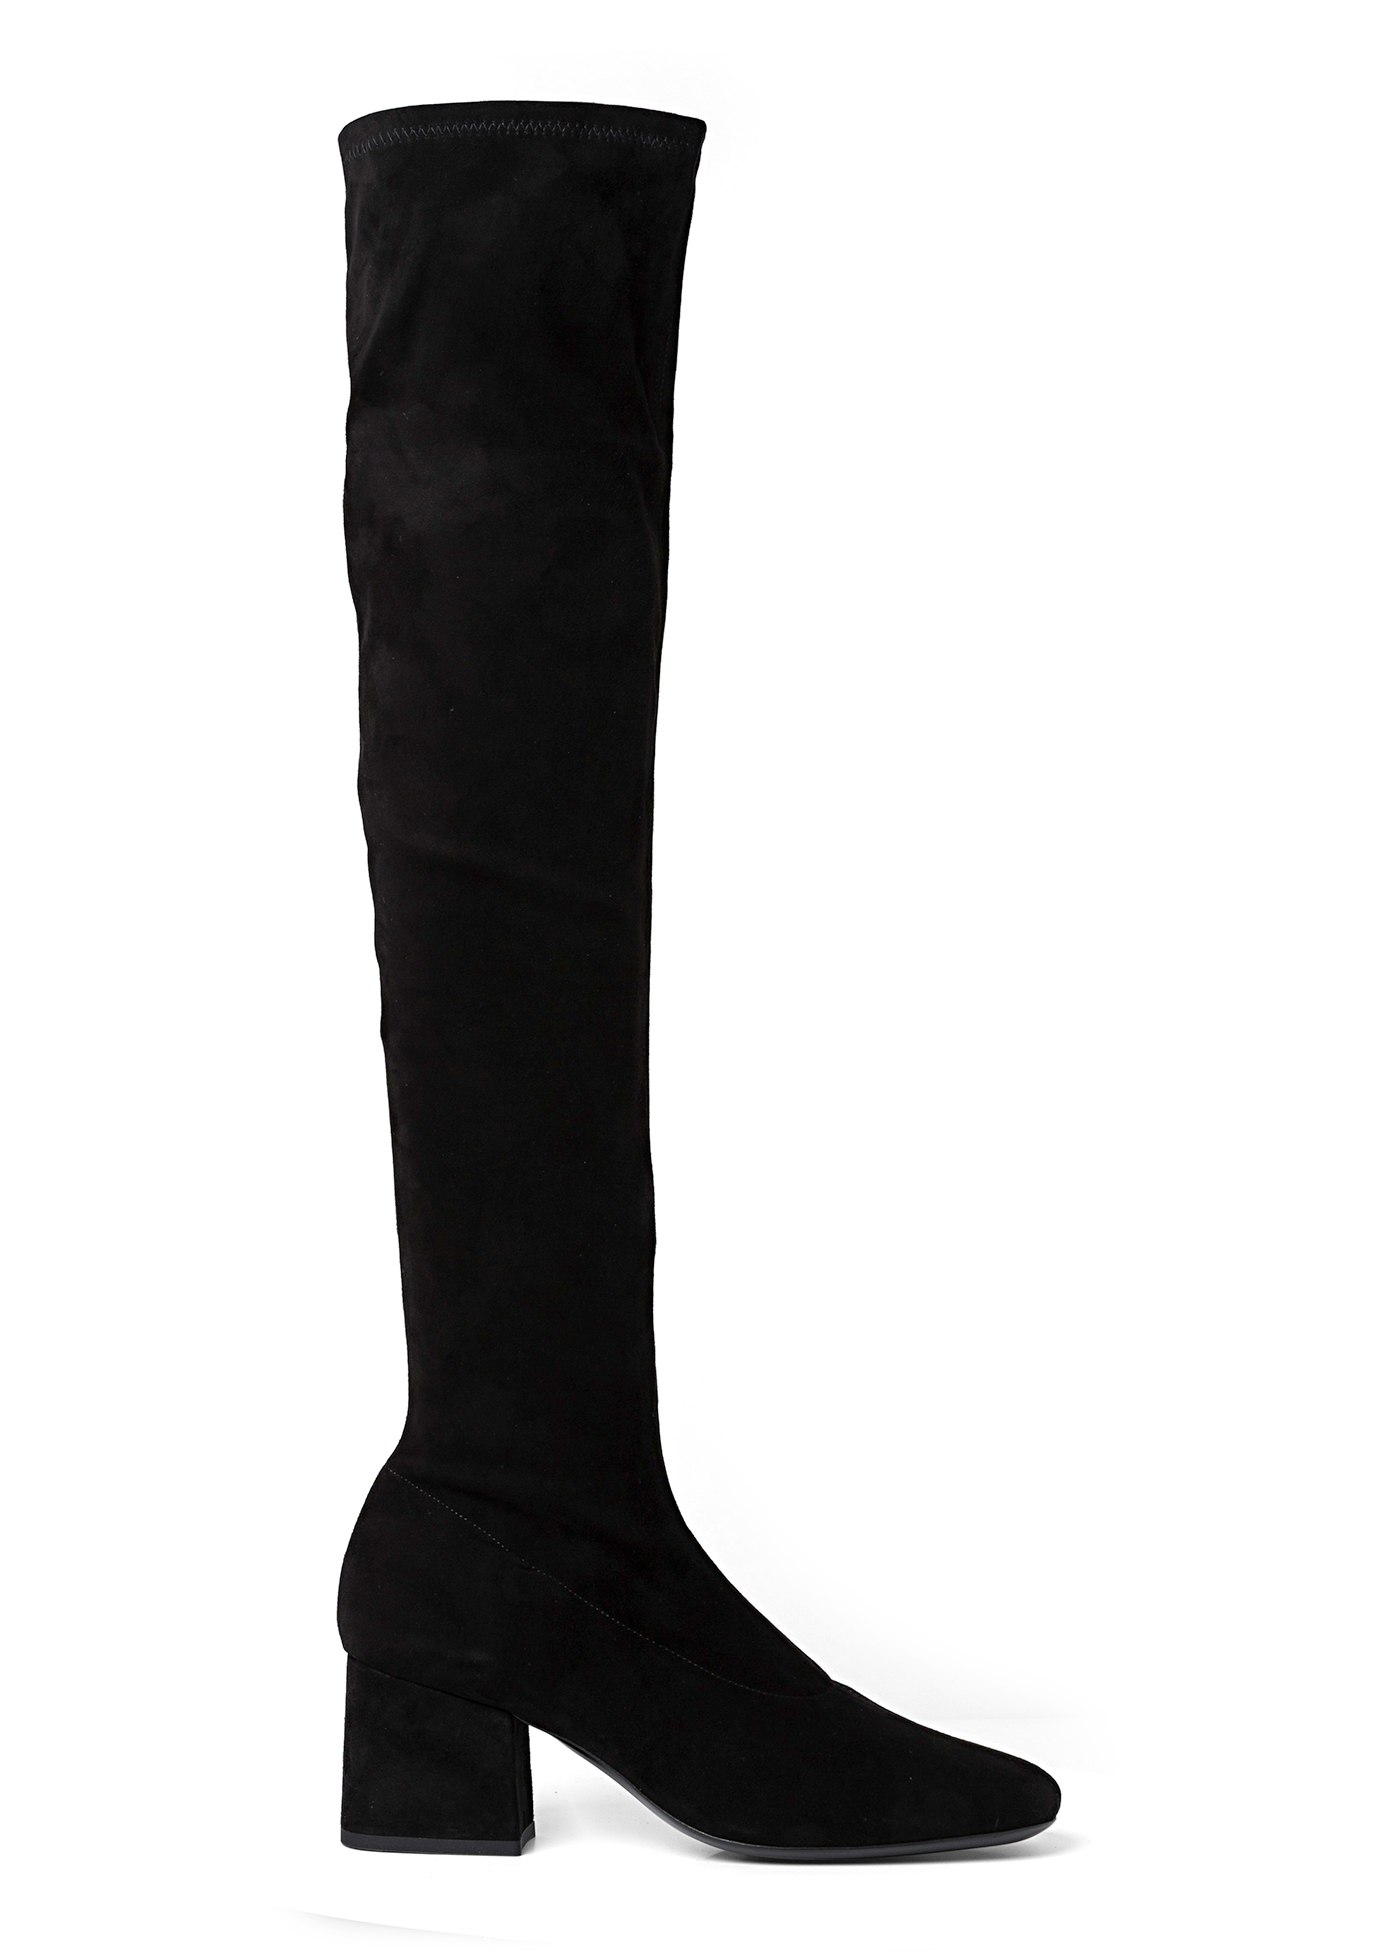 CARLOS 42 BLACK STRETCH SUEDE LEATHER image number 0